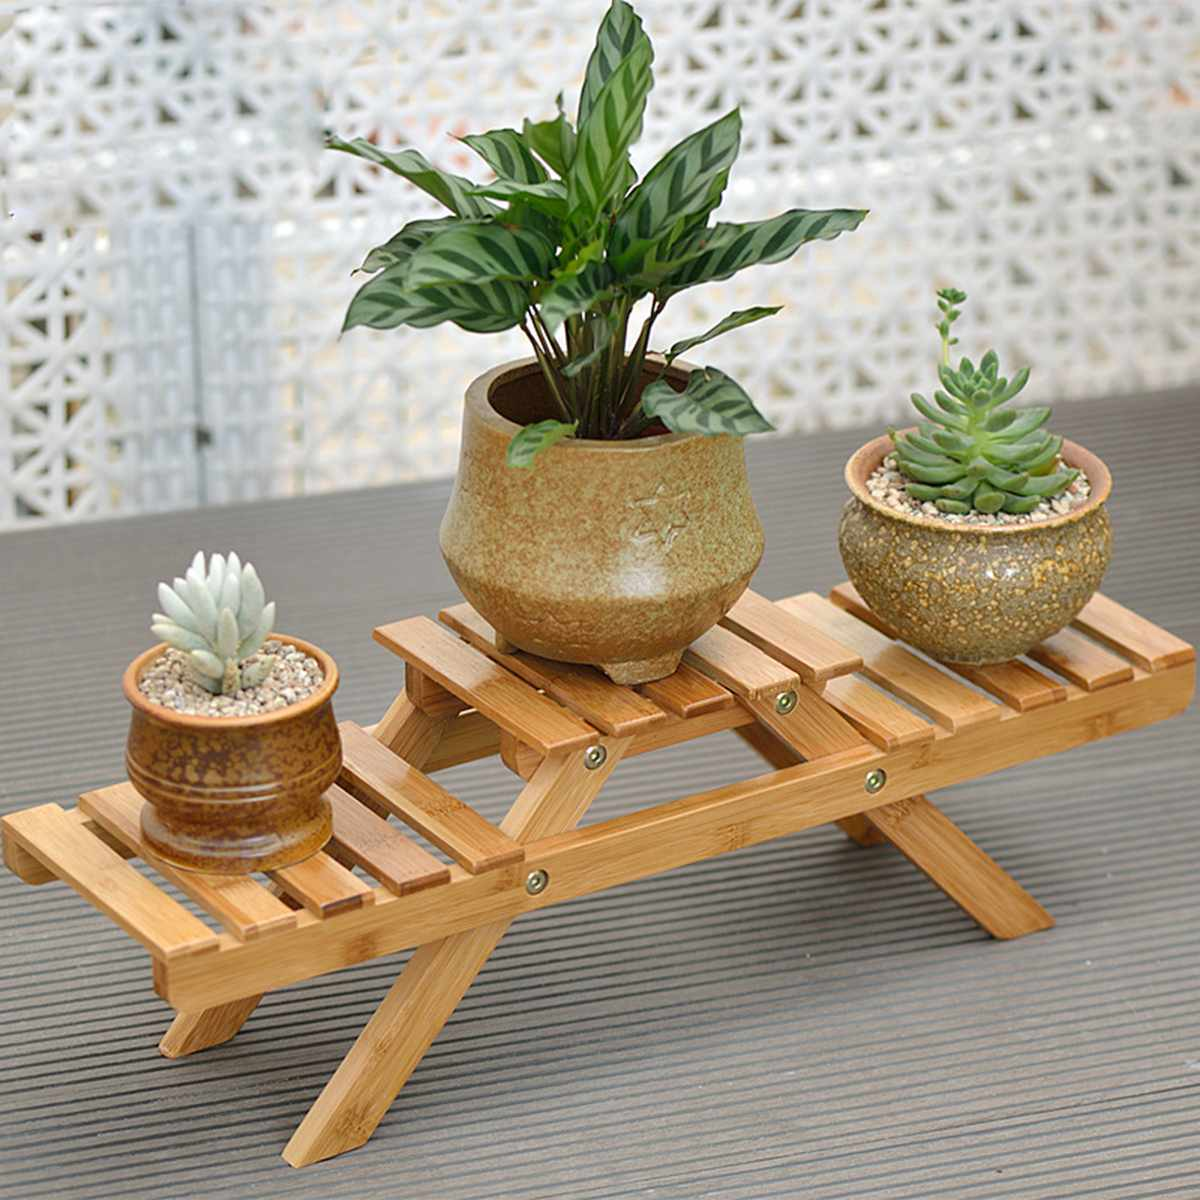 Bamboo Plant Flower Shelf Stand Flower Pot Rack Holder Garden Living Room Table Planter Display Stand Home Decor Indoor Outdoor|Plant Shelves| |  - title=